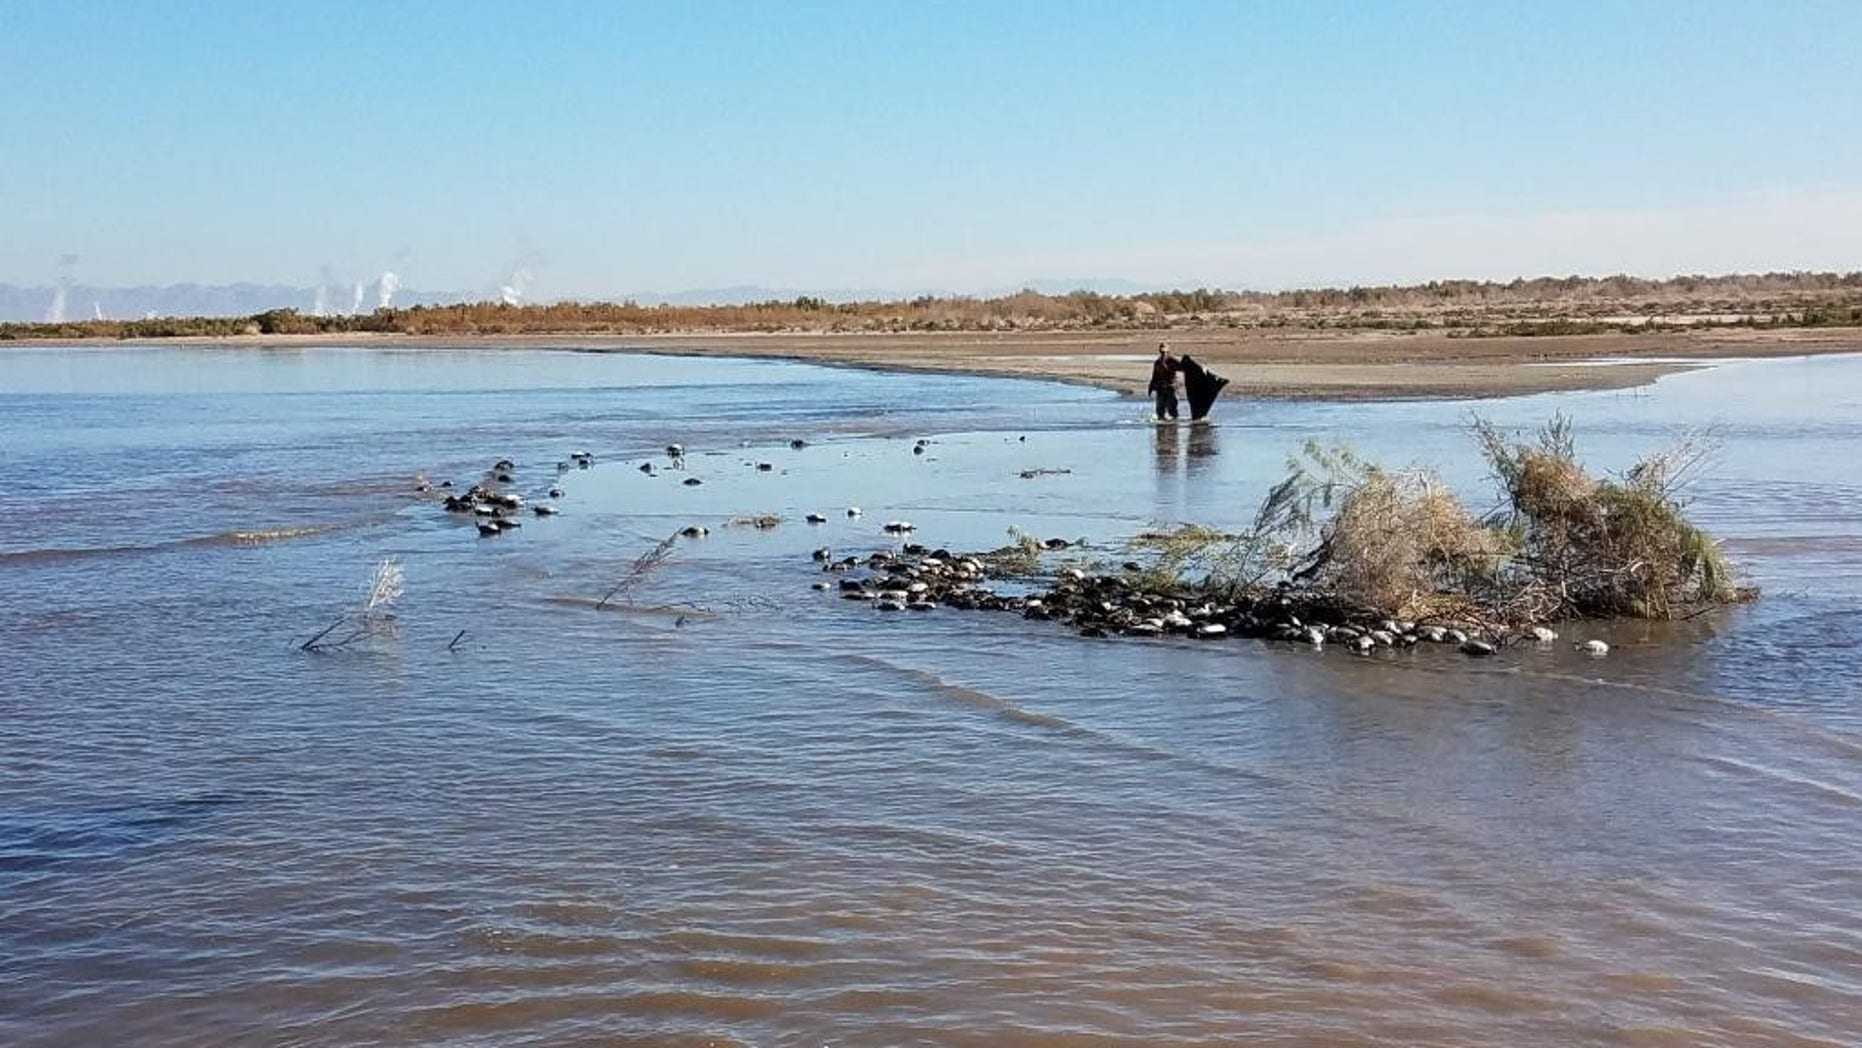 Californian wildlife officials said thousands of waterfowl died from an outbreak of cholera in the Salton Sea between 8 and 17 January.